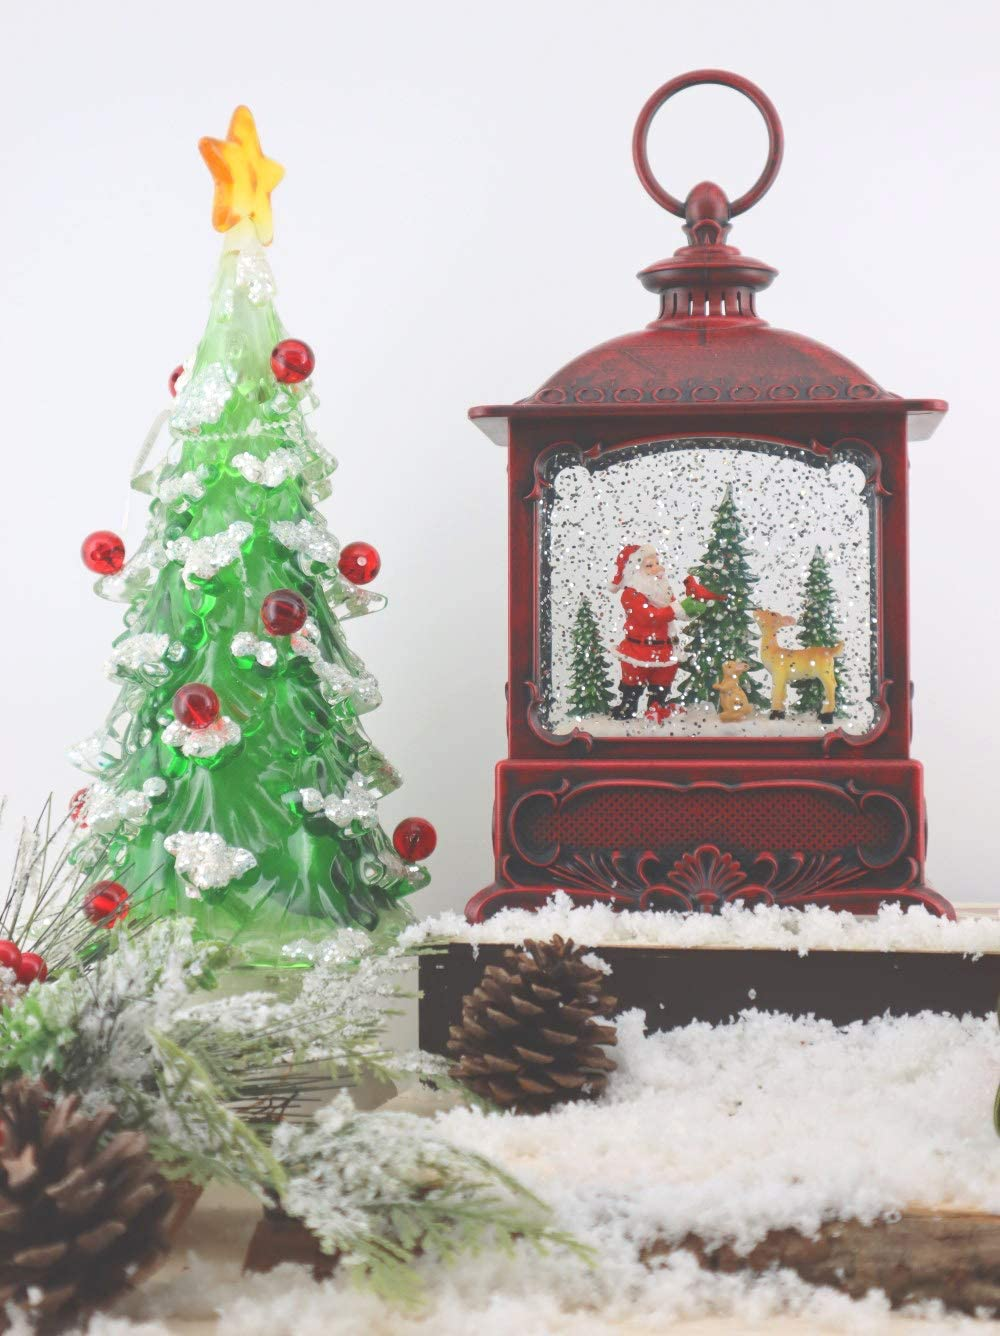 Victory Creative Santa Christmas Lighted Water Globe Lantern 8.75 H Musical Snow Globe with Swirling Glitter Battery Operated /& Timer.